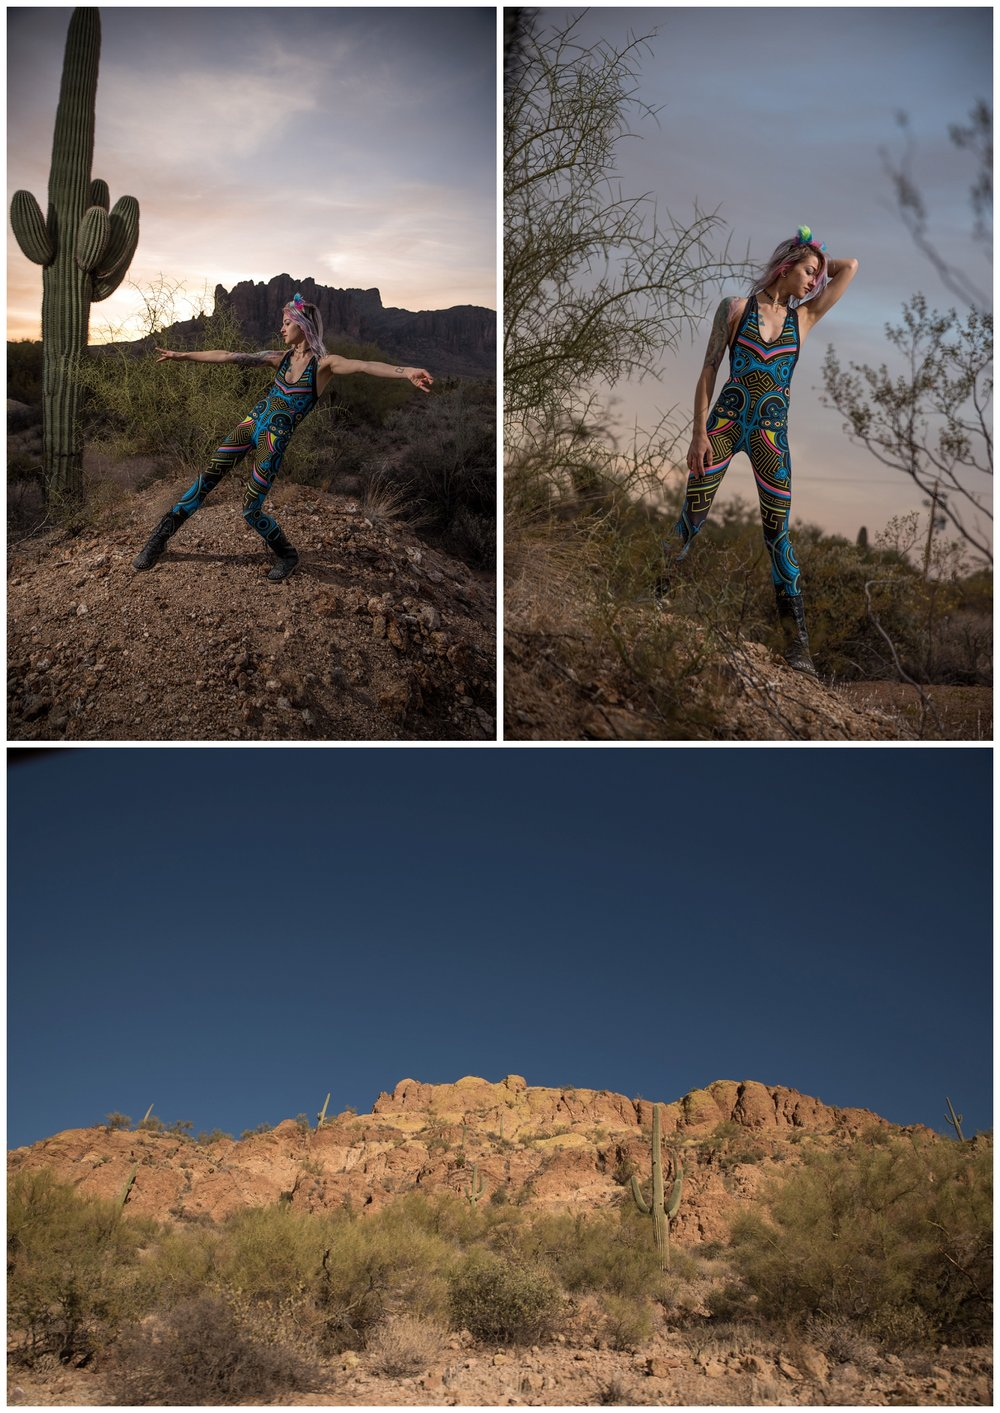 gianna's photography medina minnesota arizona portrait photographer desert southwest